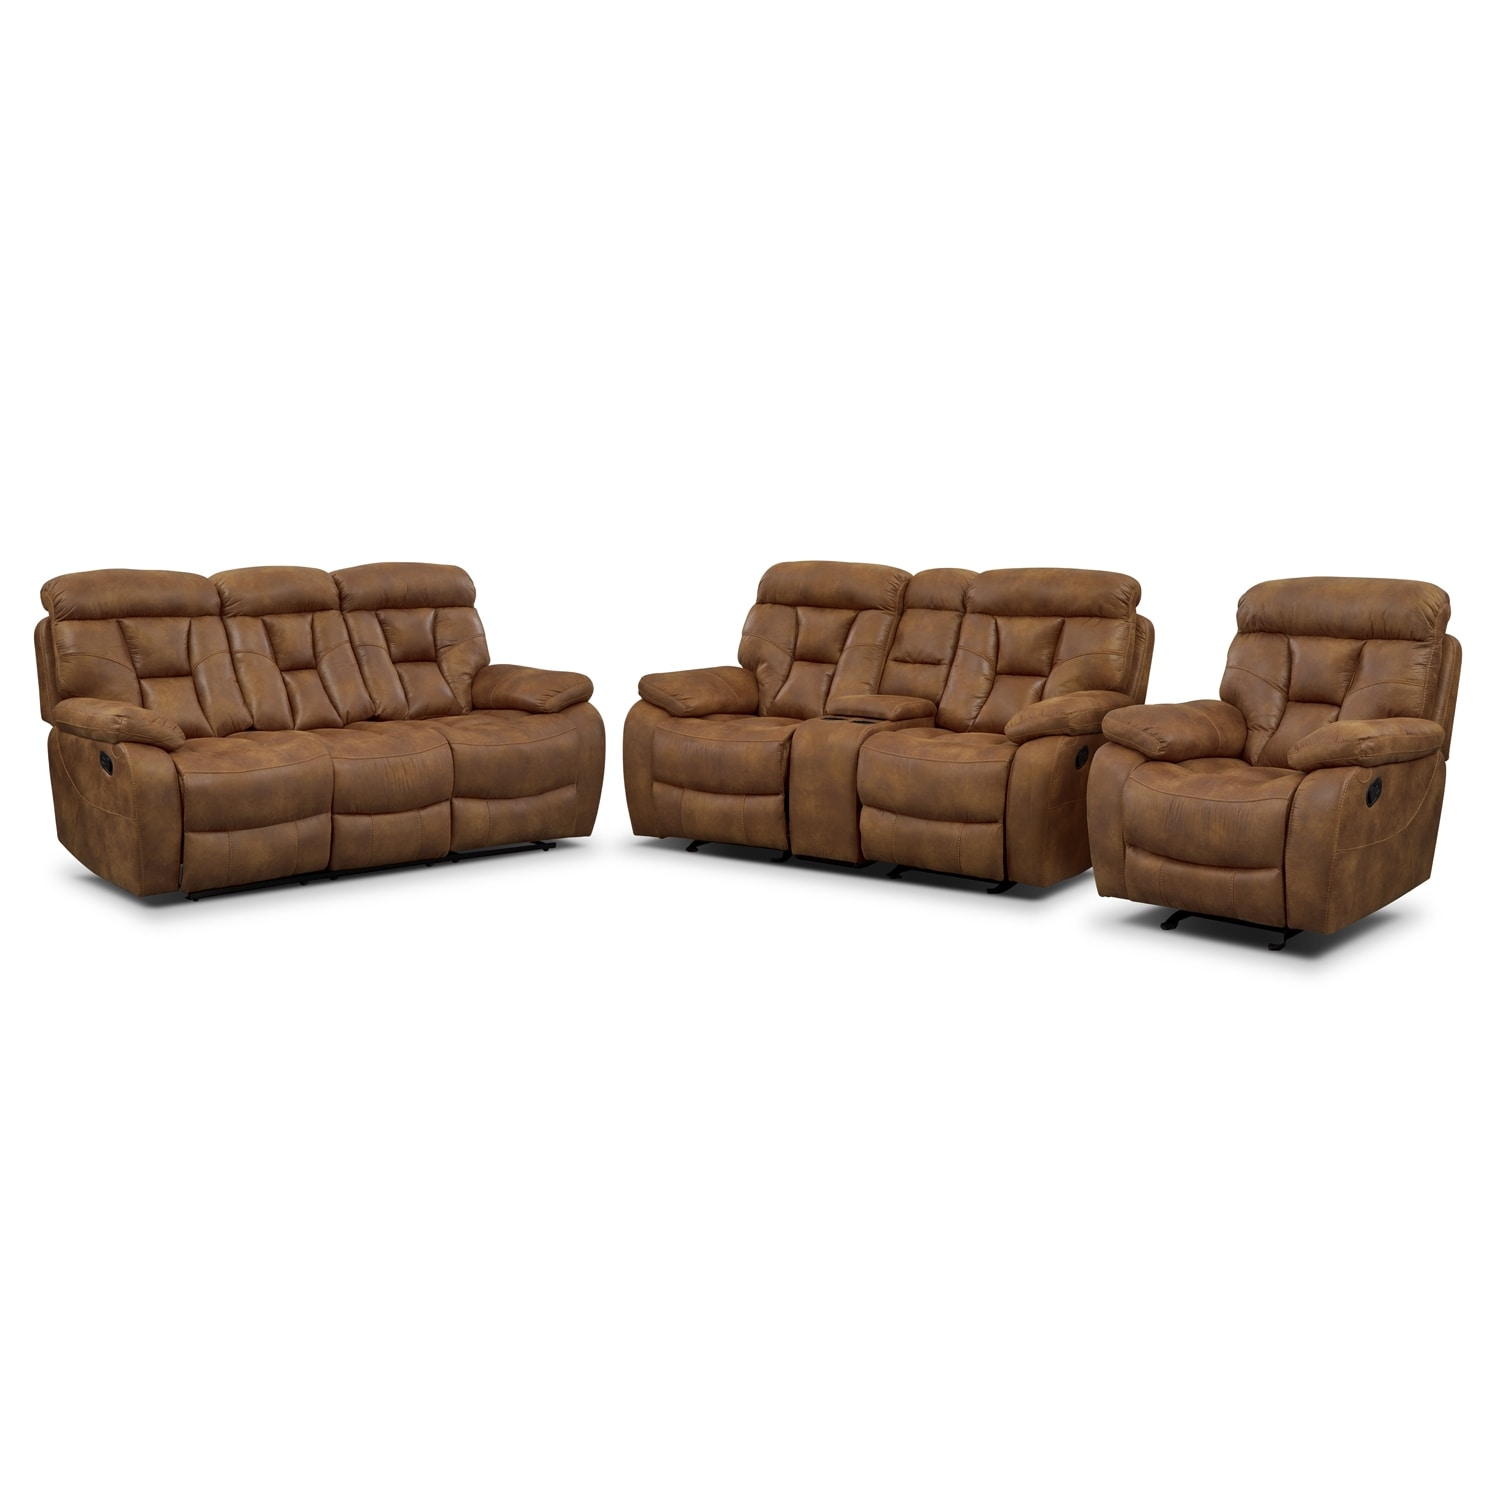 Dakota Reclining Sofa Gliding Loveseat And Glider